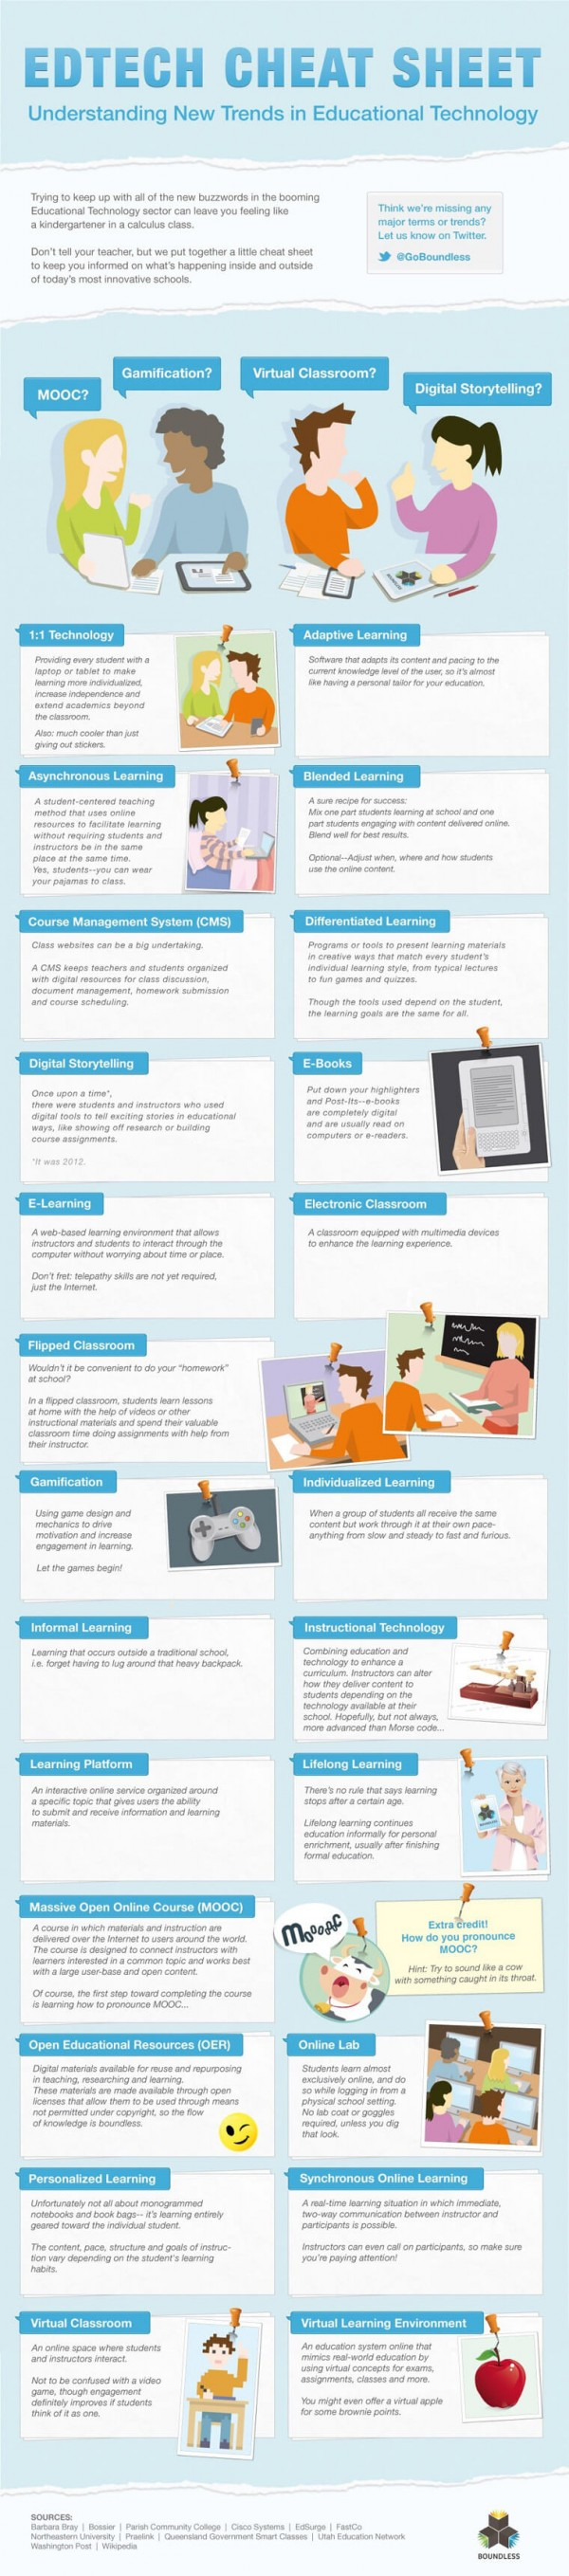 Infographic - Digital Learning Buzzwords Educational und Educational Tech Buzzwords